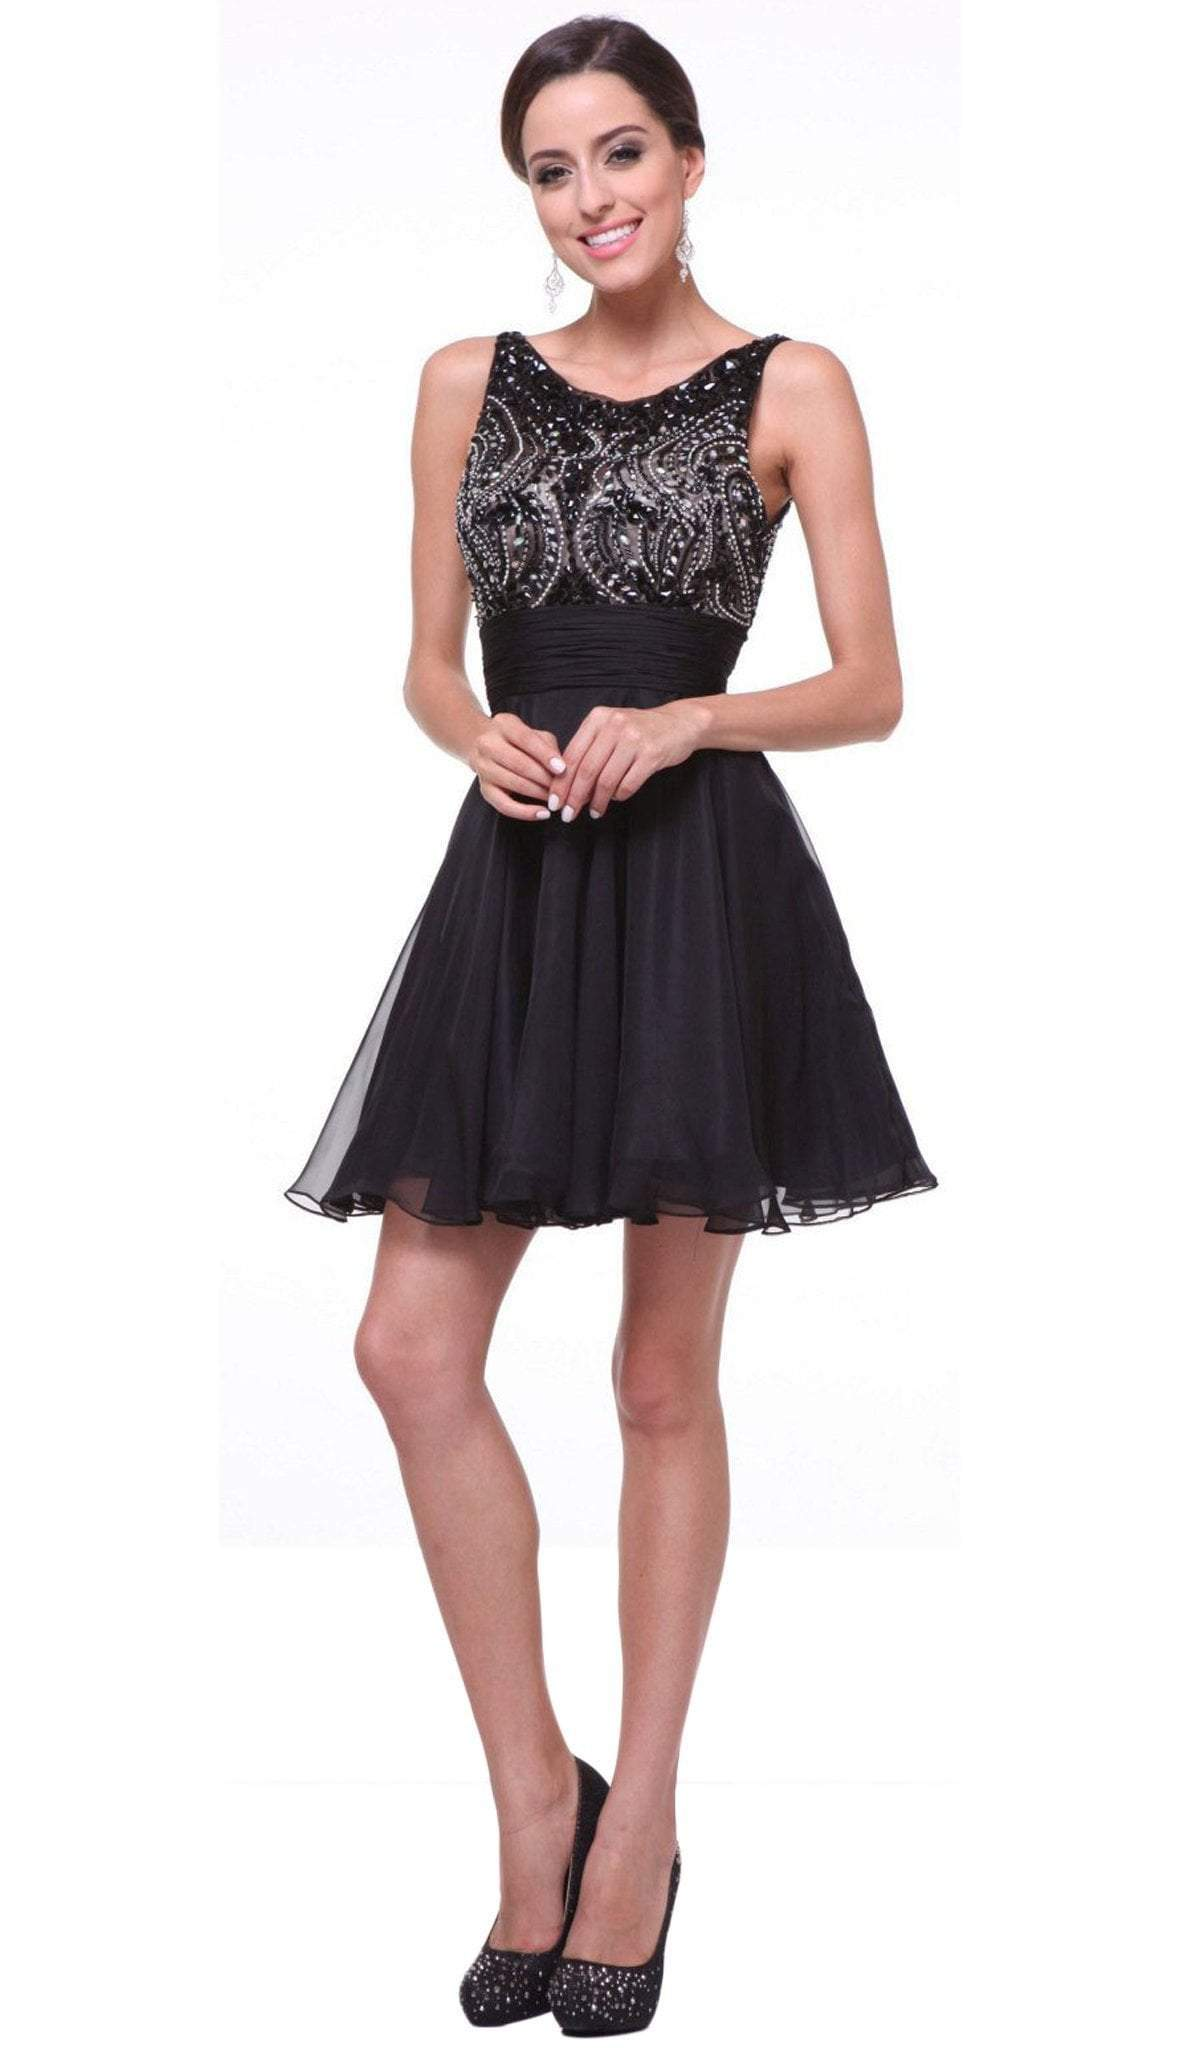 Cinderella Divine - Stone Embellished Bateau Neck Cocktail Dress in Black